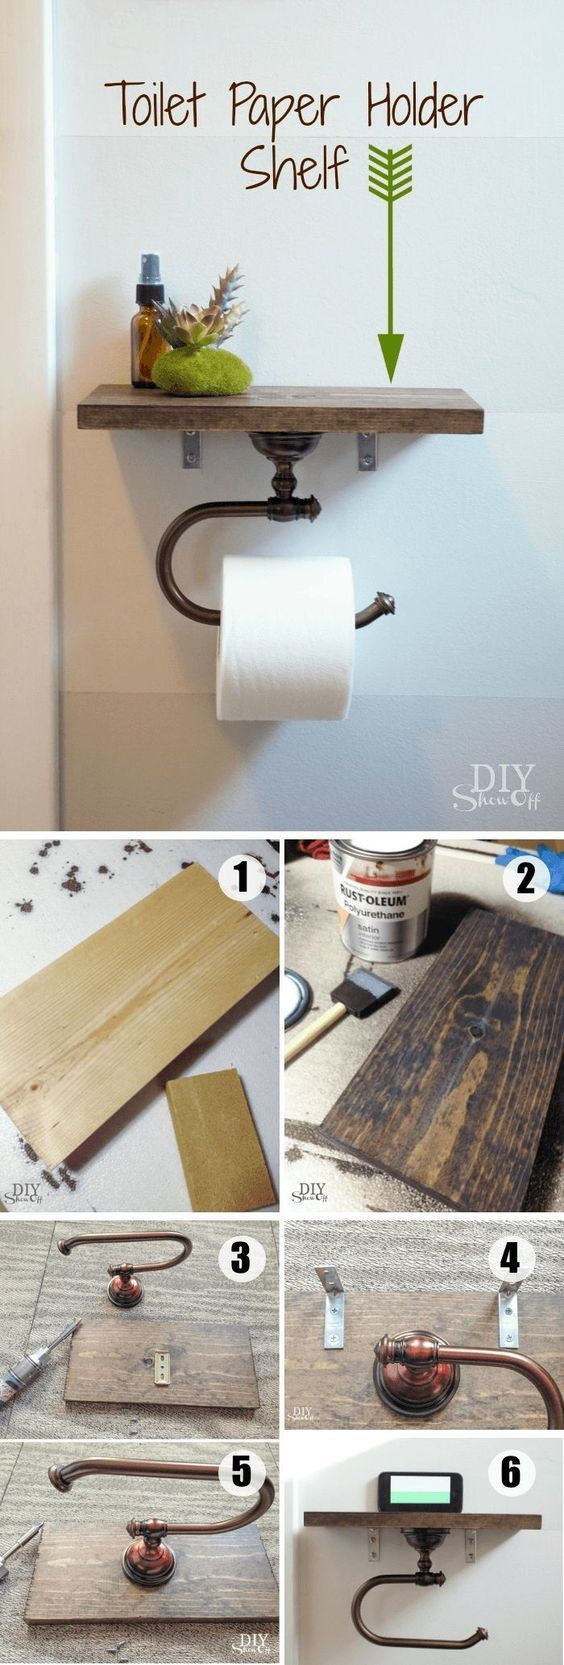 DIY Toilet Paper Holder with Shelf // Use this clever and functional toilet paper holder to keep small handy bathroom accessories or to create attractive displays. 15+ toilet paper ideas and diys. love the versatility of some of these.